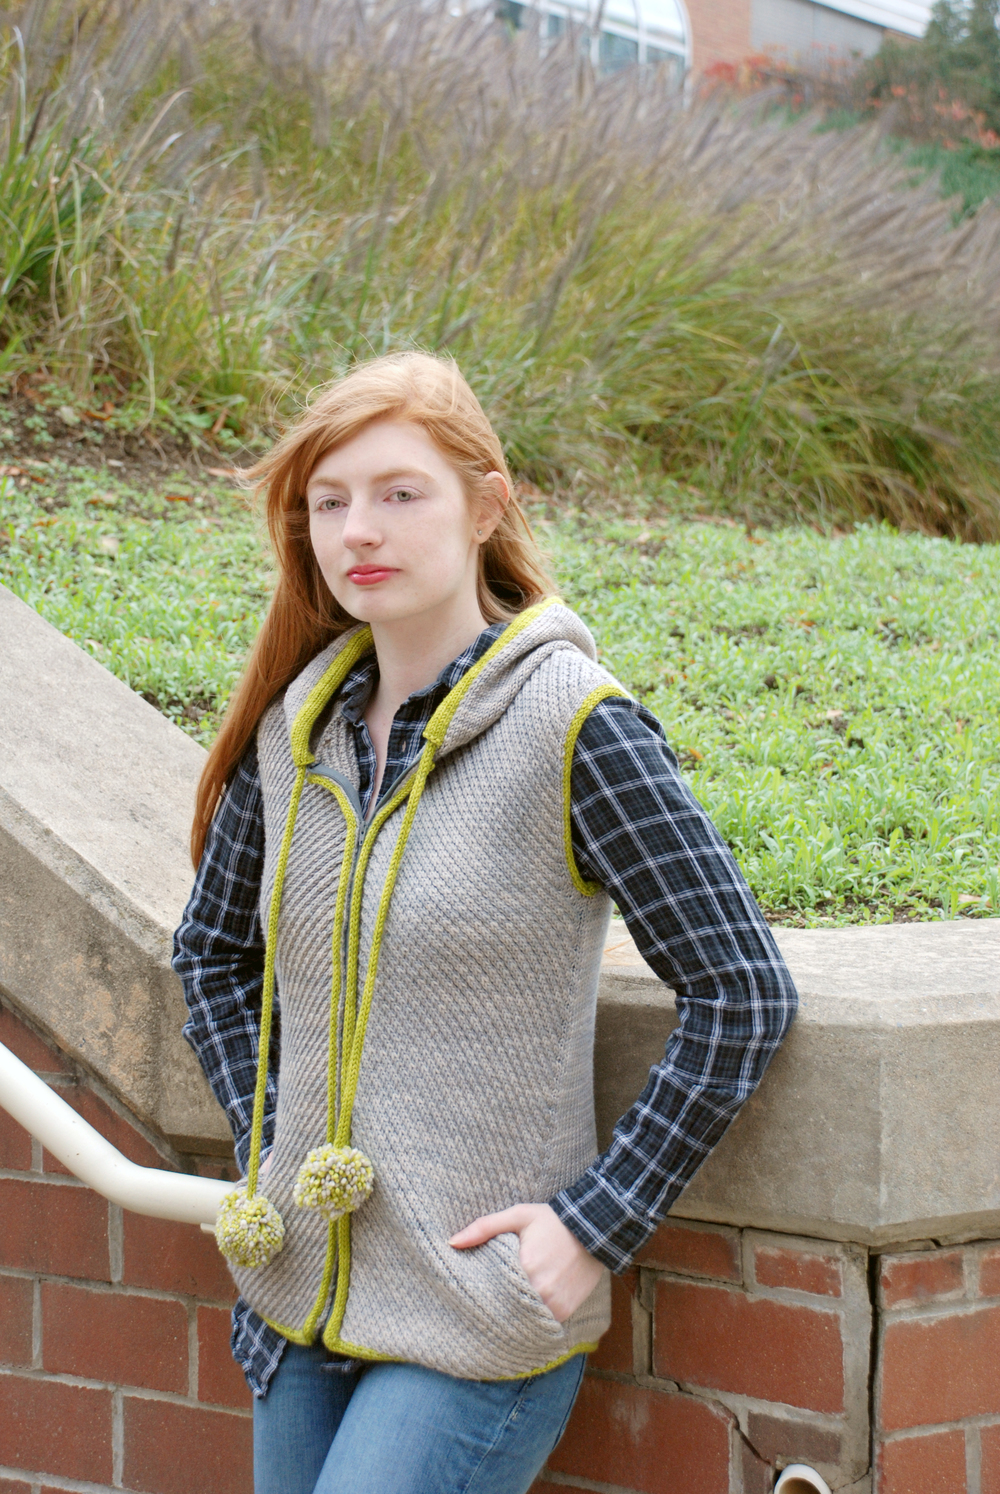 Limetta, knit in For Better or Worsted, shown in Seaside and Avocado.